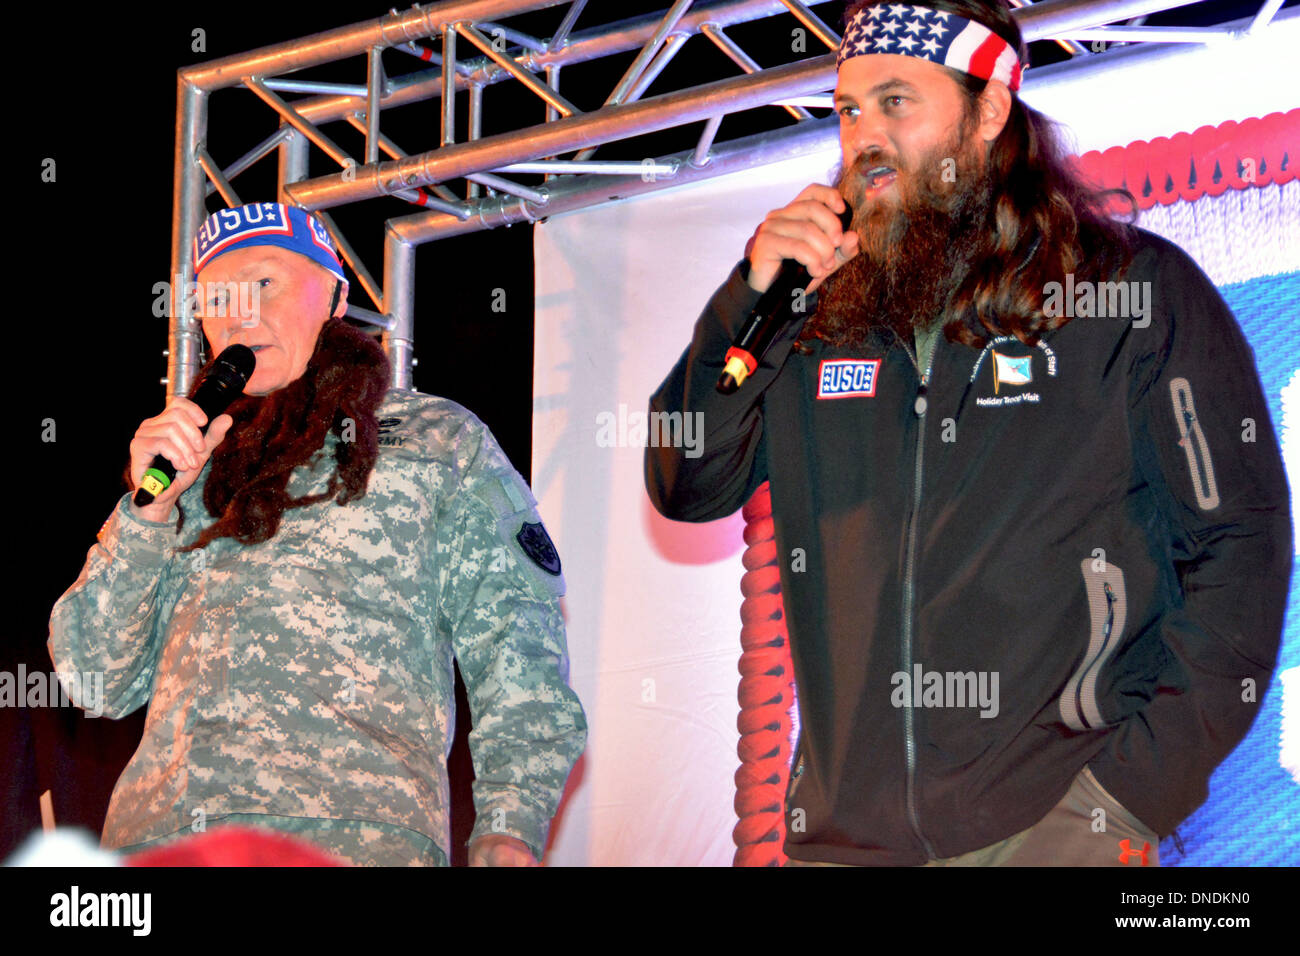 Chairman of the Joint Chiefs General Martin E. Dempsey, right, wears a fake beard as he sings a Christmas song with Duck Dynasty reality television star Willie Robertson December 12, 2013 at Wiesbaden, Germany. The visit was part of the USO Holiday Tour. - Stock Image